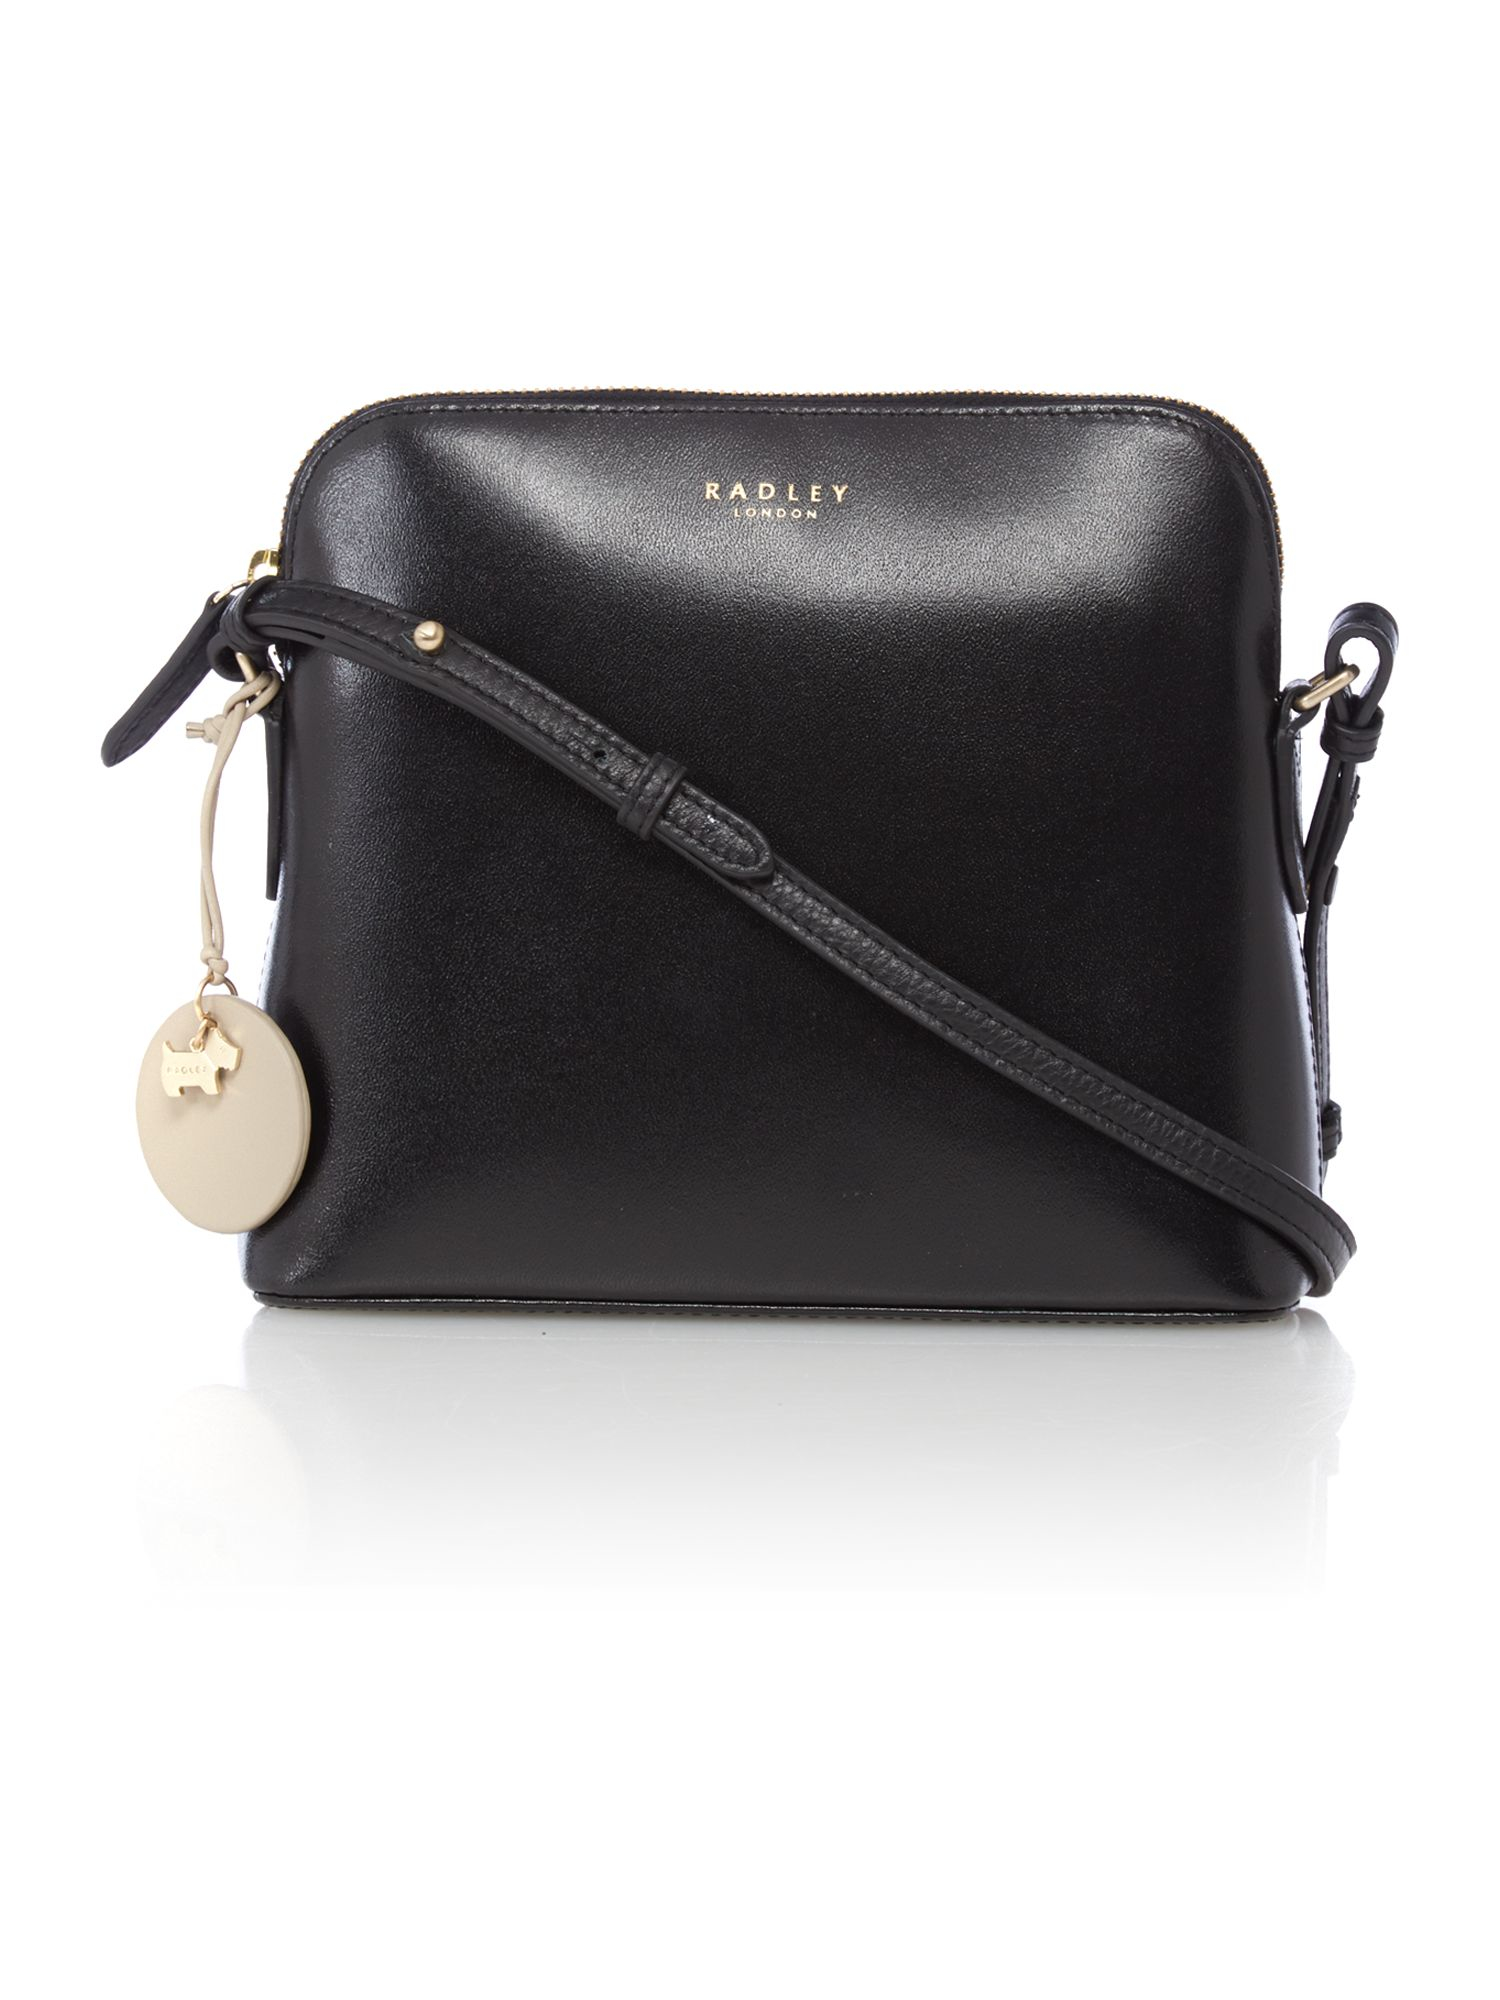 Whether you just need to take a few things to go or you like the convenient size of compact purses, this Small Crossbody Handbag from Mondo is just the bag you'll want. The front pocket unzips and opens up as a wallet, so you won't even need to carry the extra weight of a billfold. With the main.